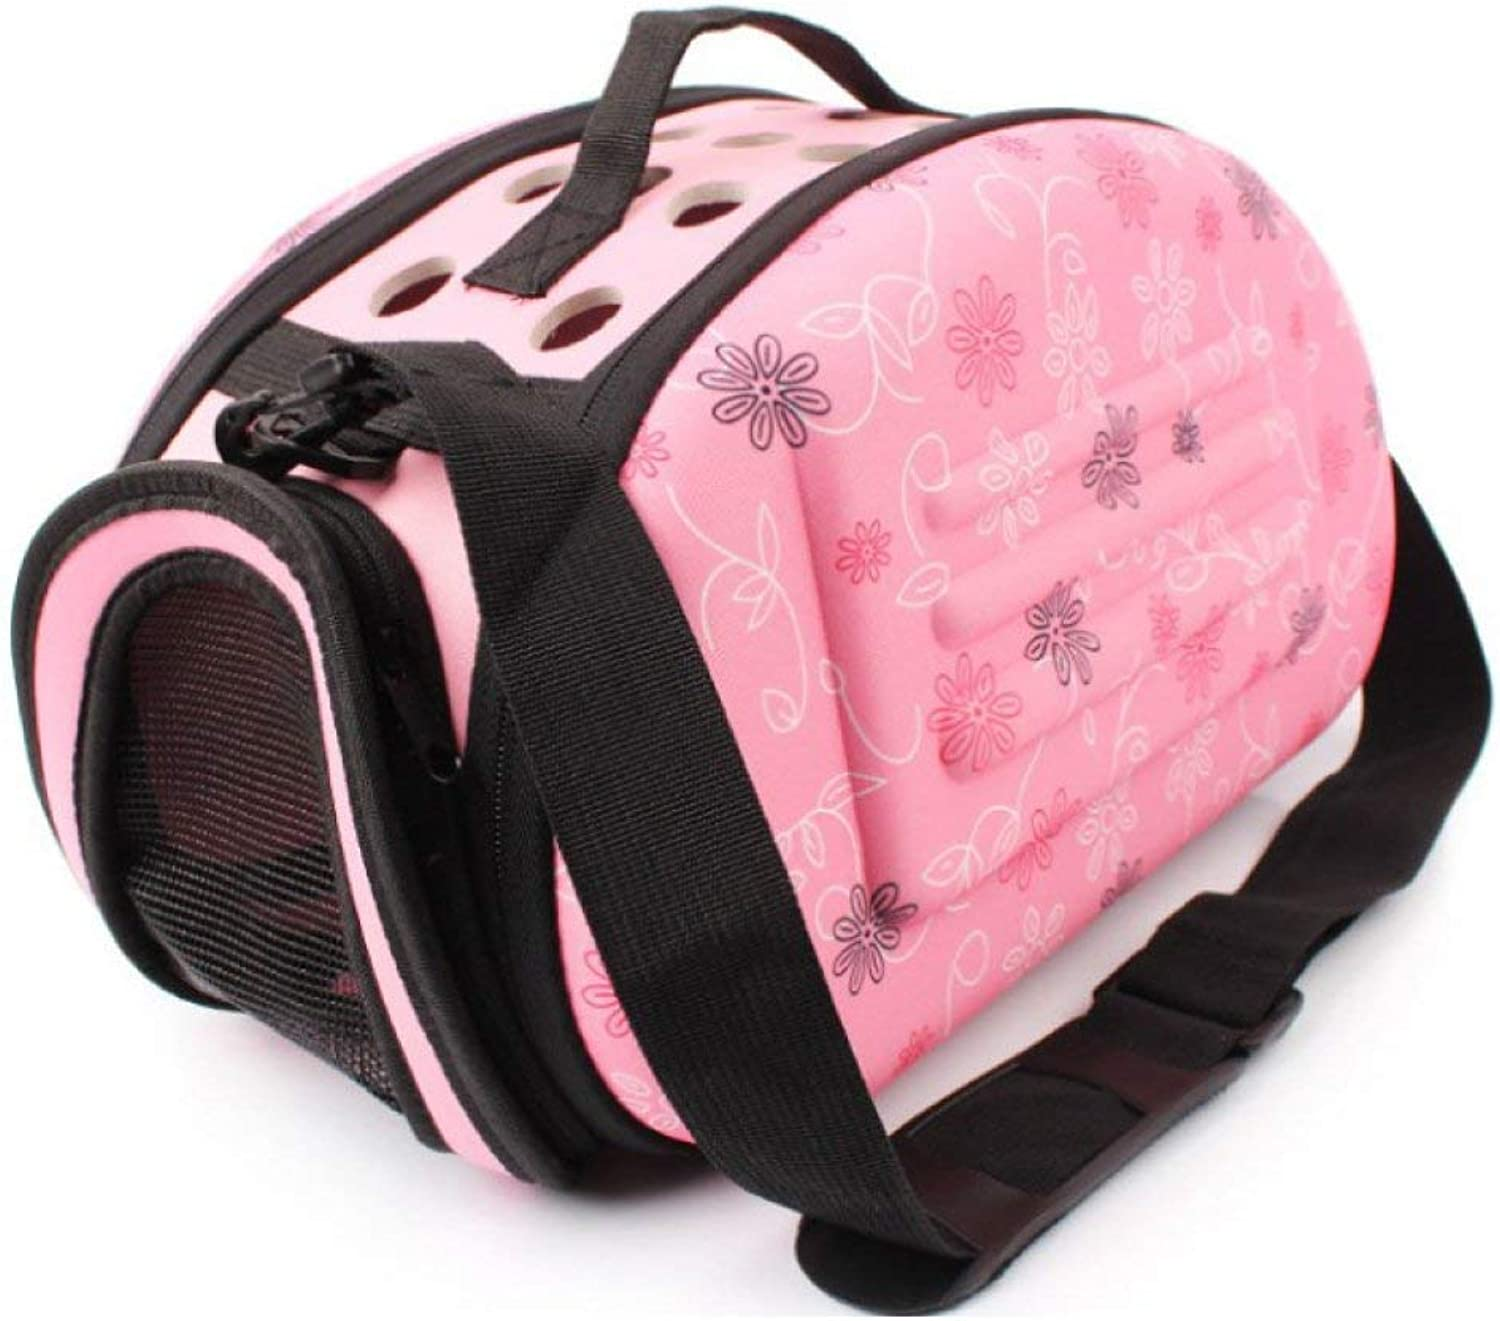 Pet Carrier Seat Pet Backpack Travel Pet Bag Outdoor Carry Bag Dog Bag,Pink Pet Carrier Crate